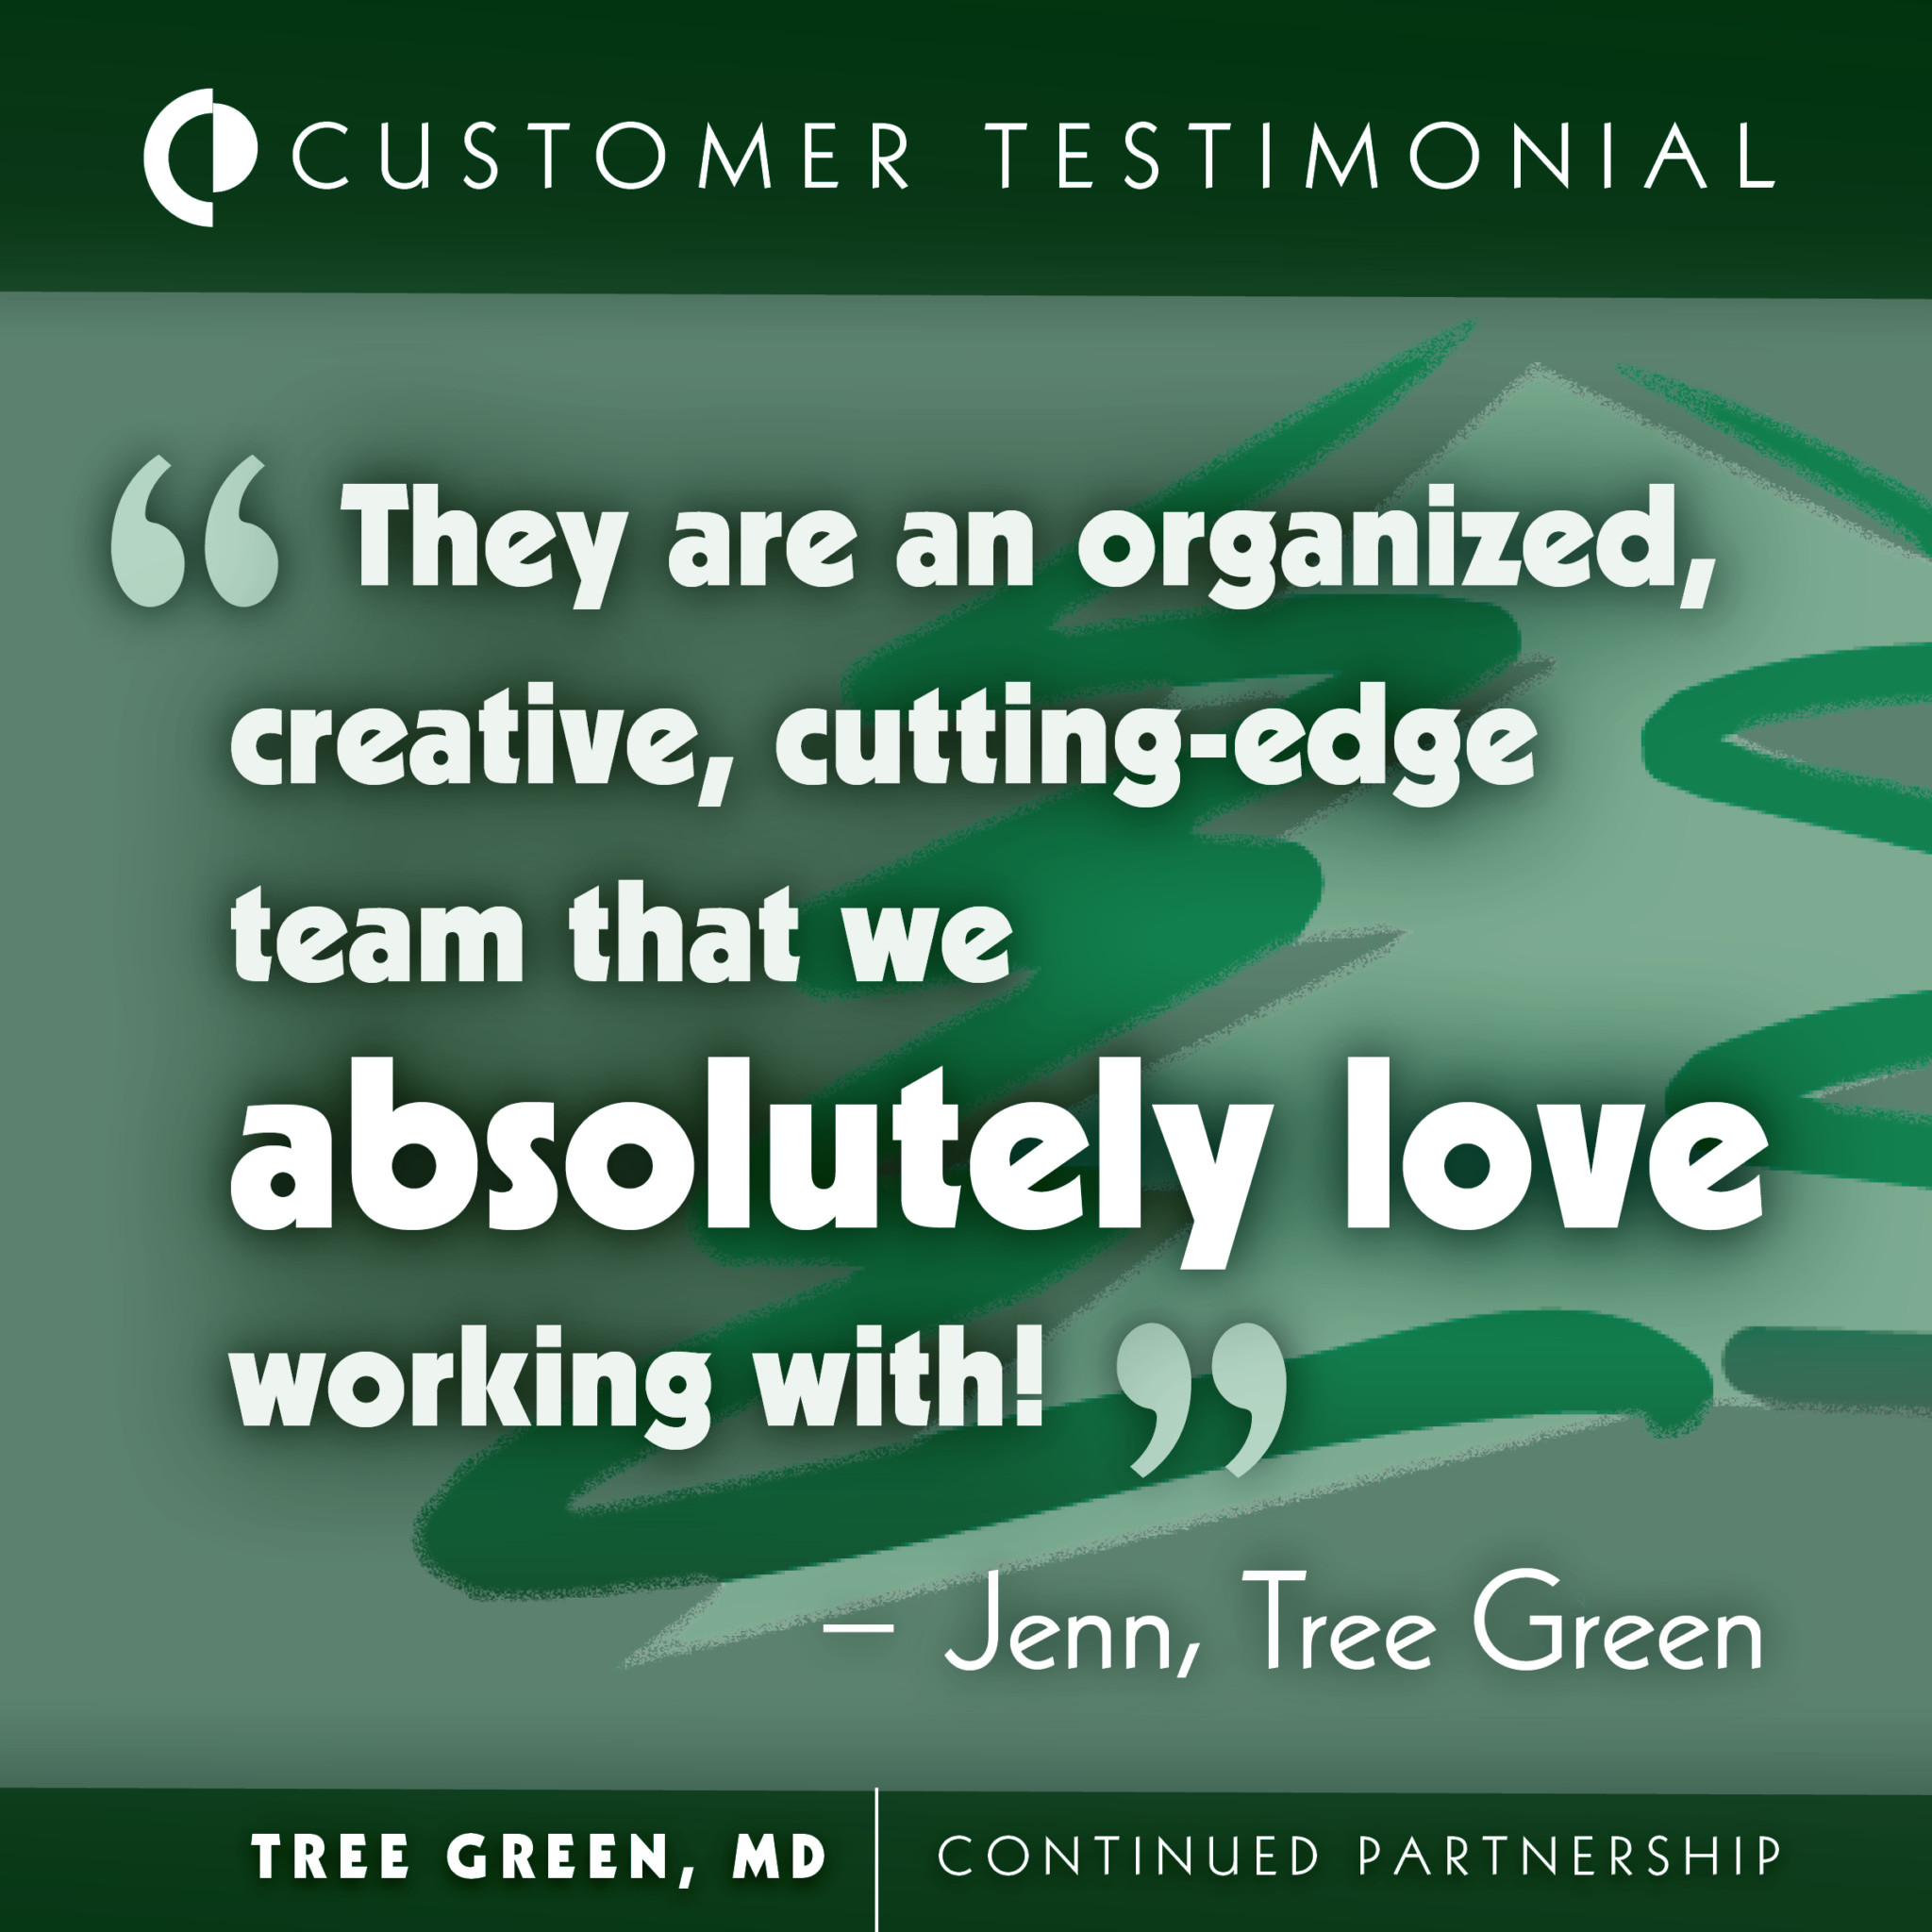 Tree Green Testimonial Pics Printing Service West Chicago